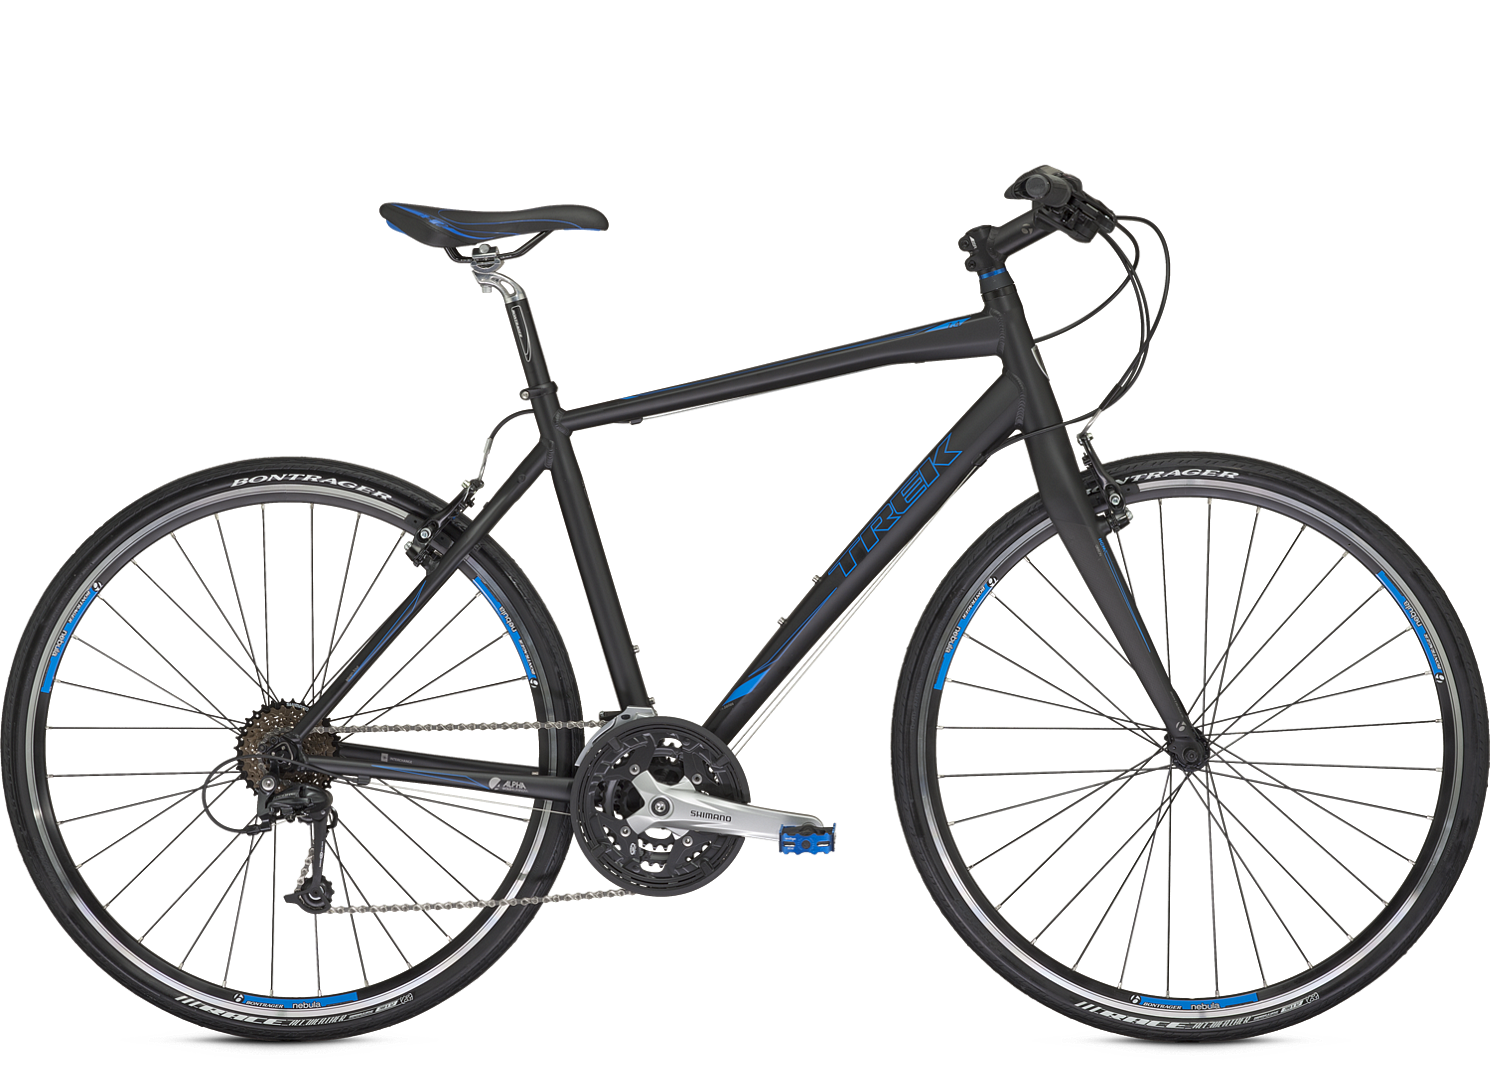 Old bicycle png. Bicycles images free download